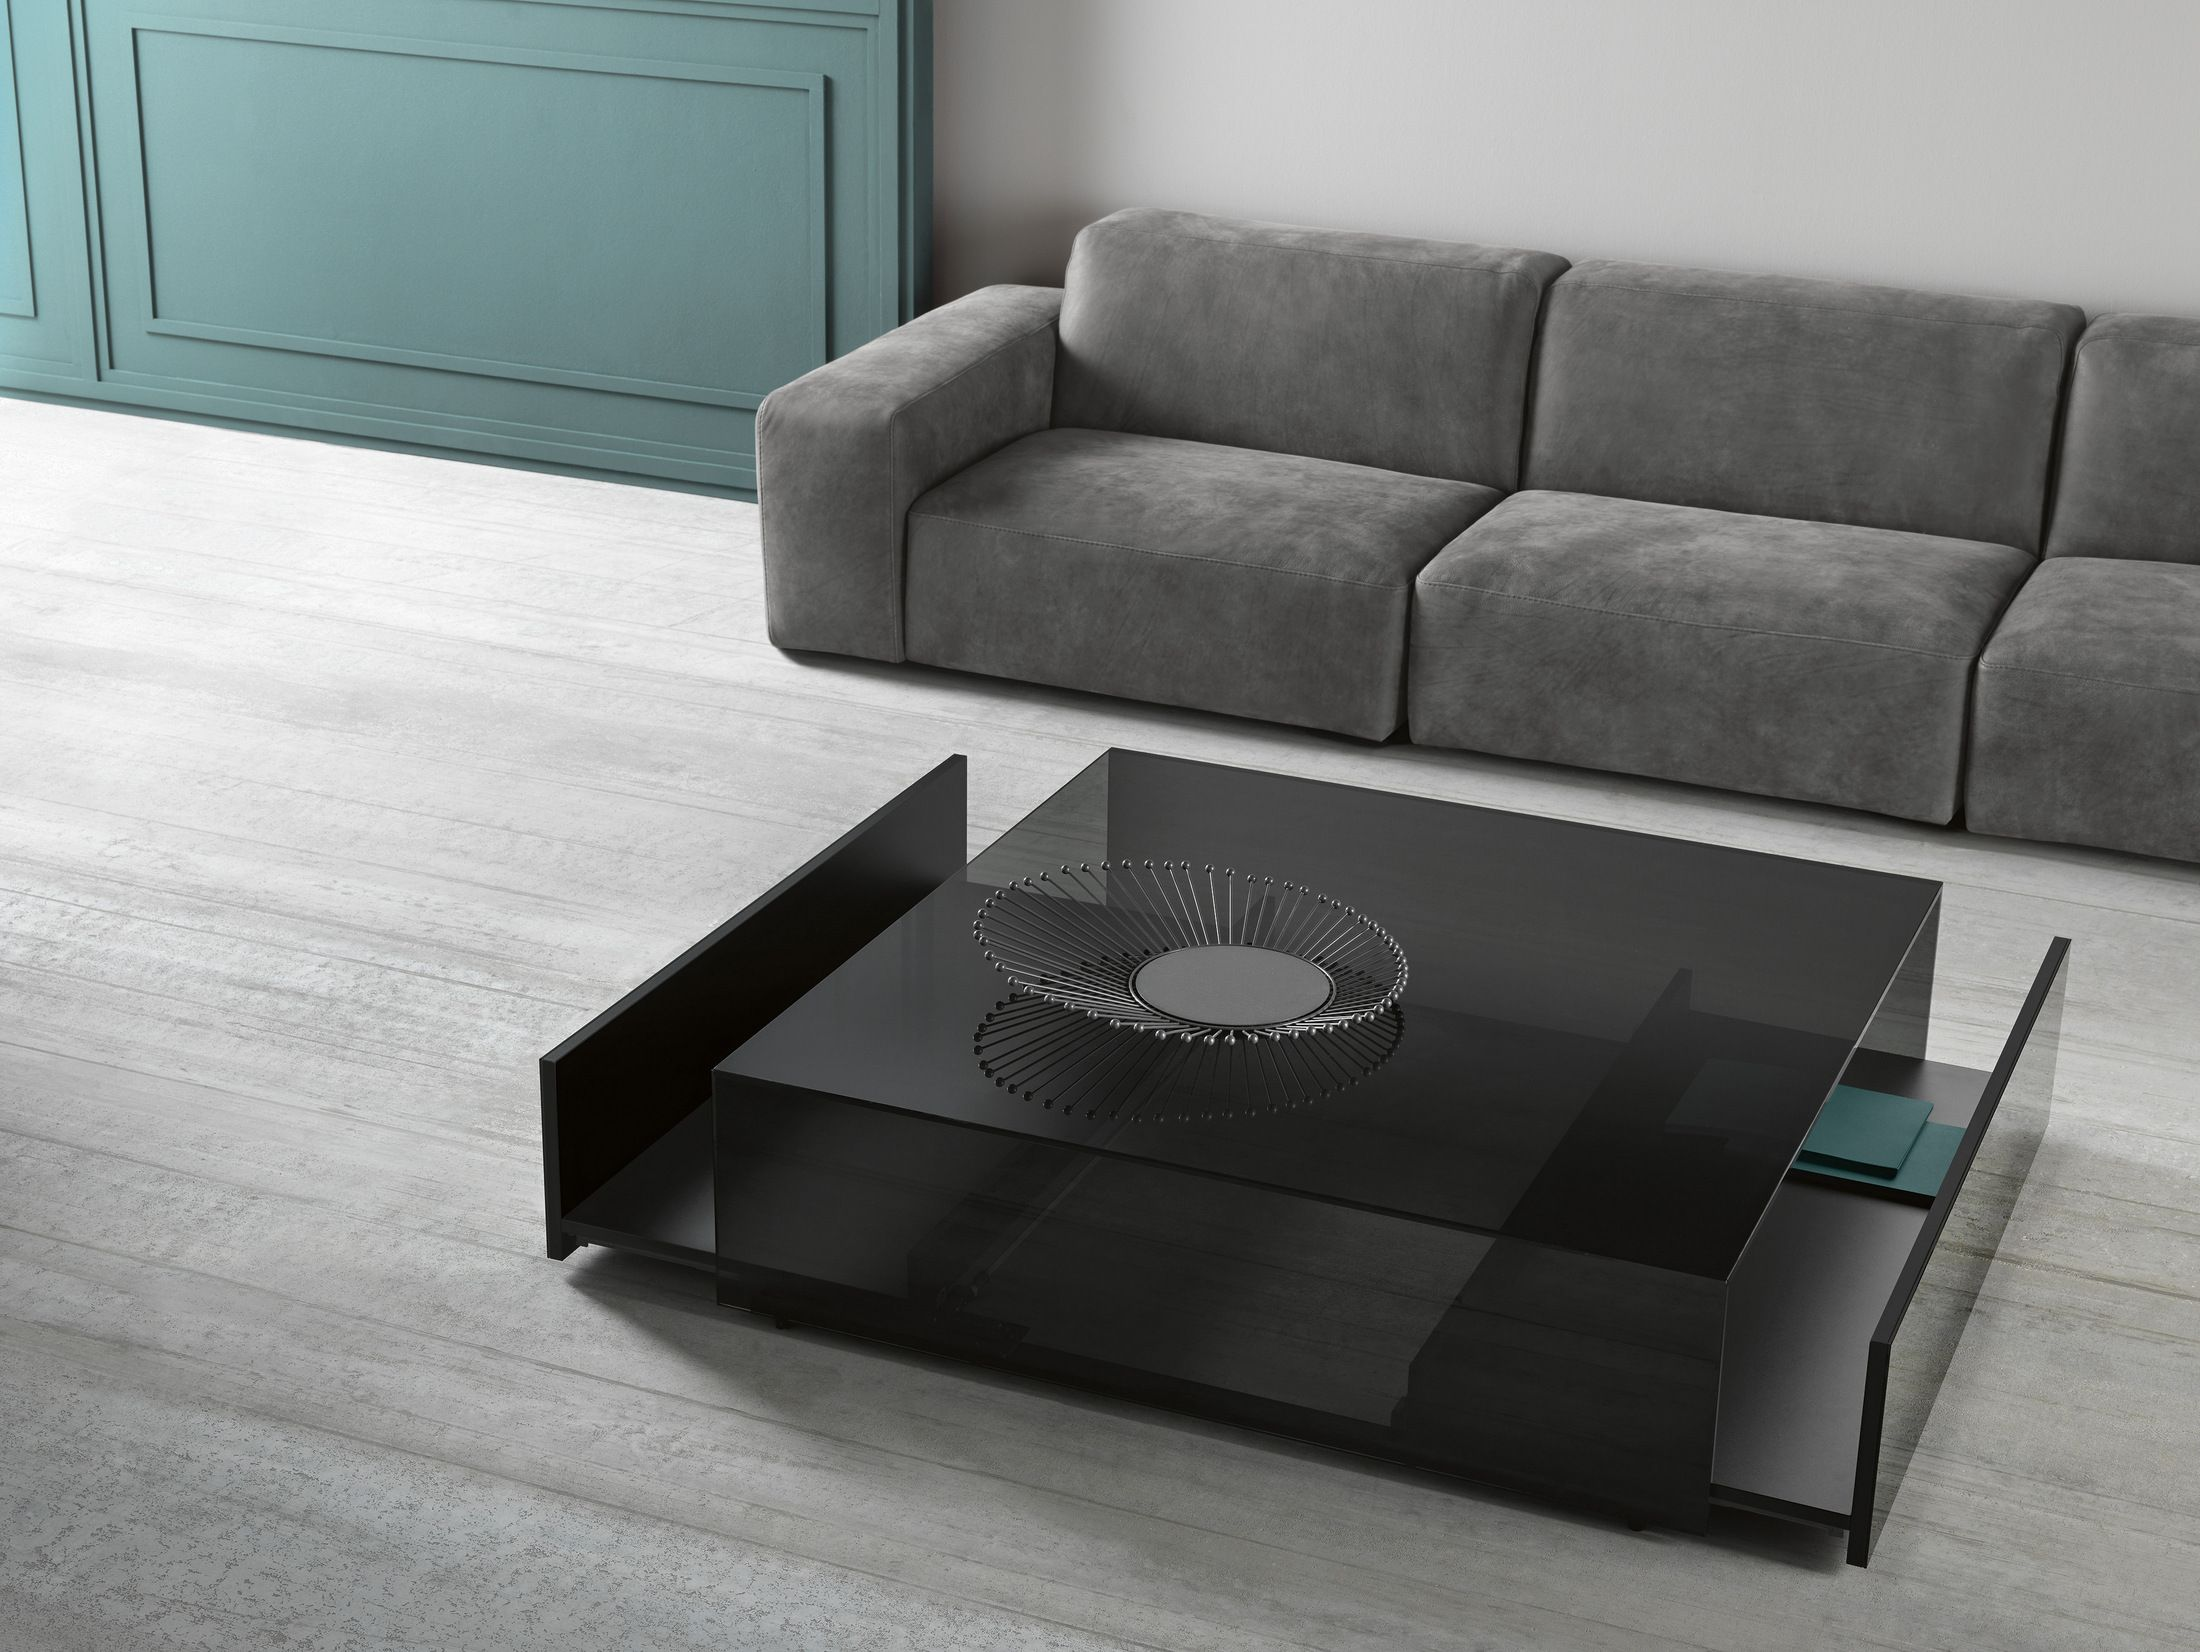 Tonelli Mobili ~ Quiller by uto balmoral tonelli design low tables pinterest